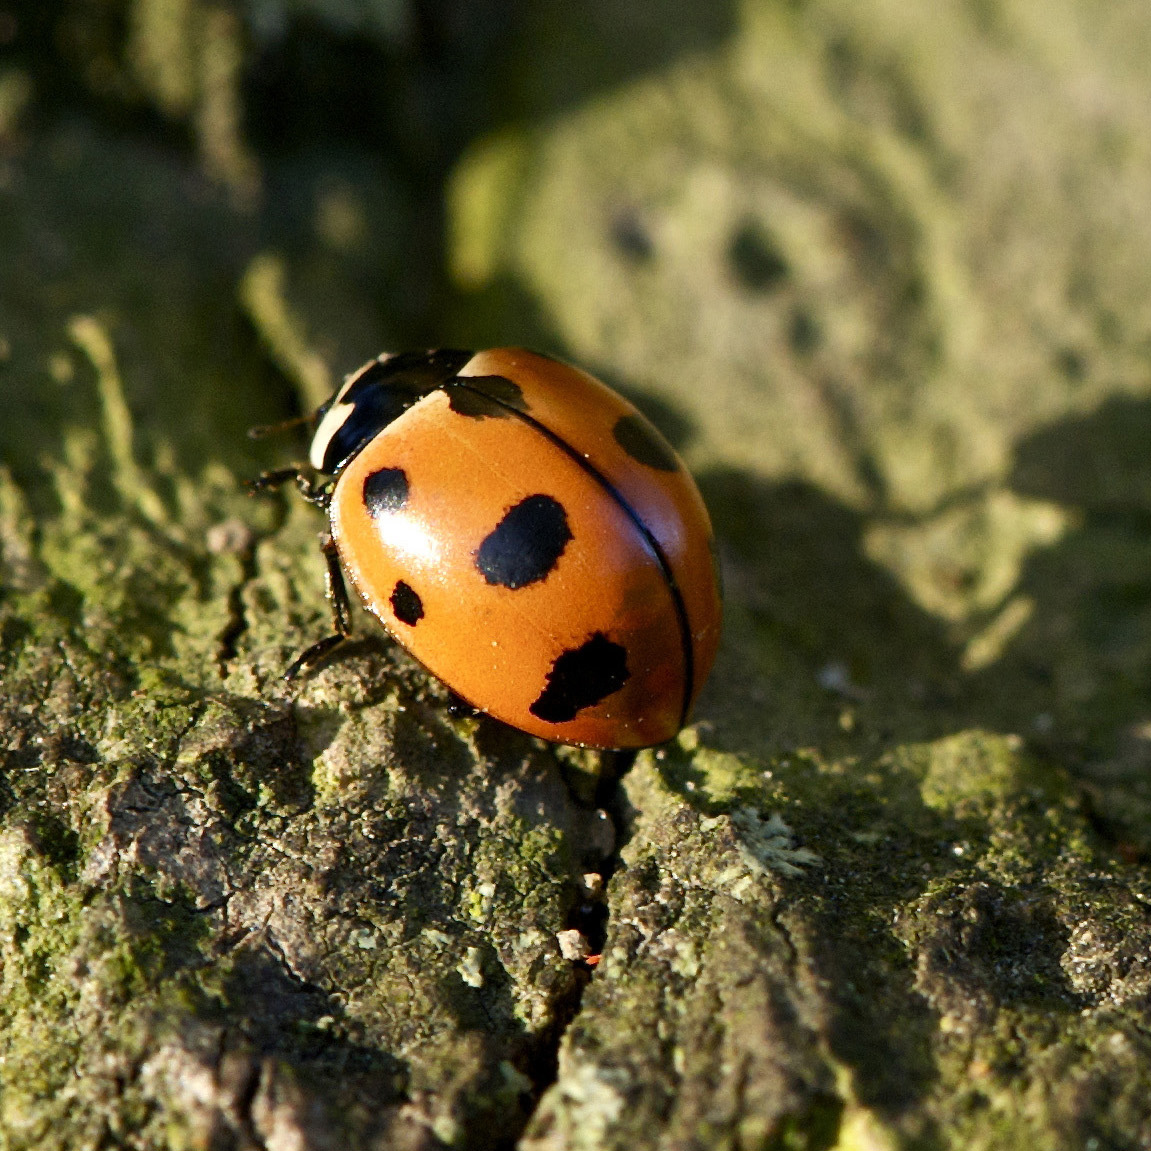 A red lady beetle (a.k.a. ladybug) is perched atop a mossy log.